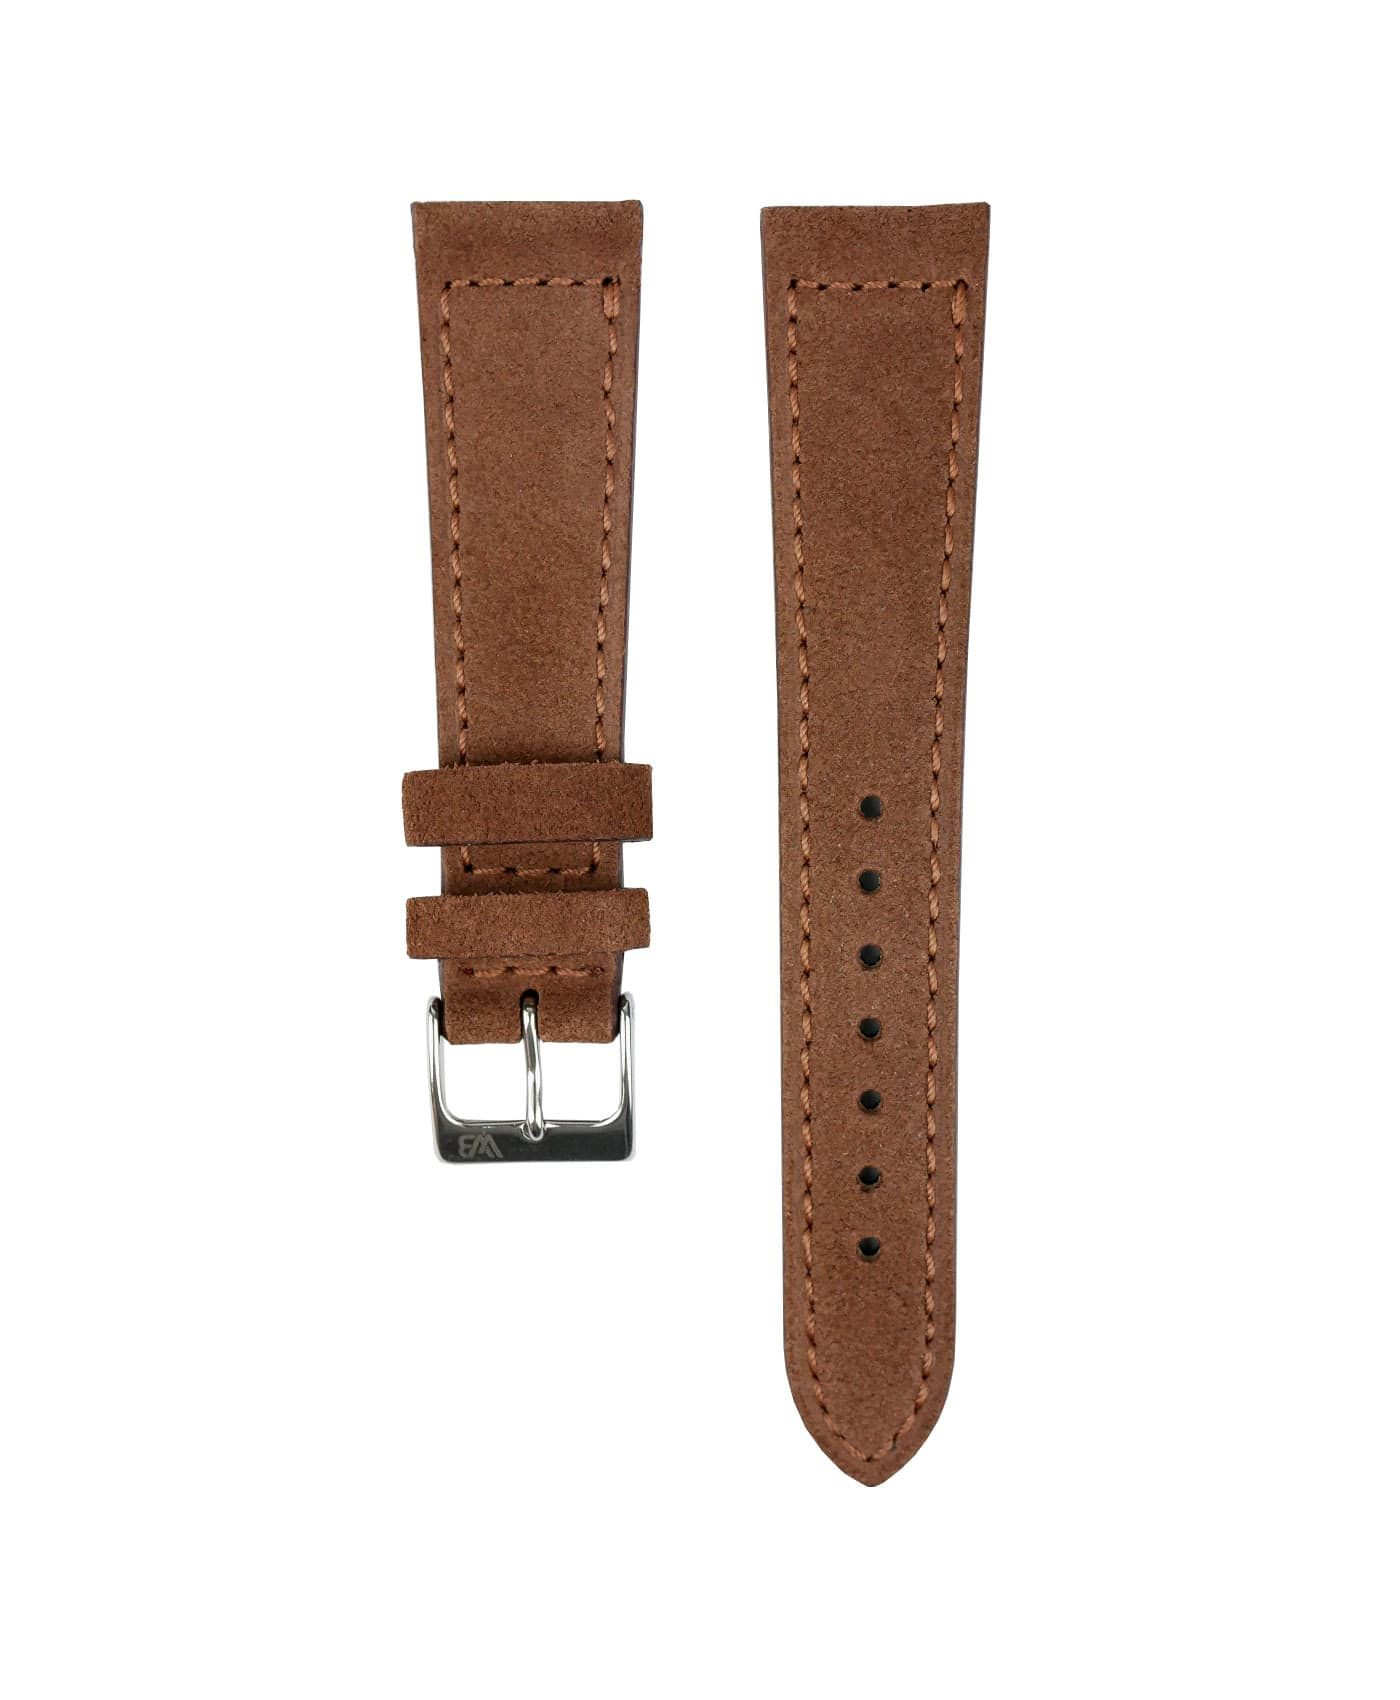 Suede leather strap with side seam_brown_front